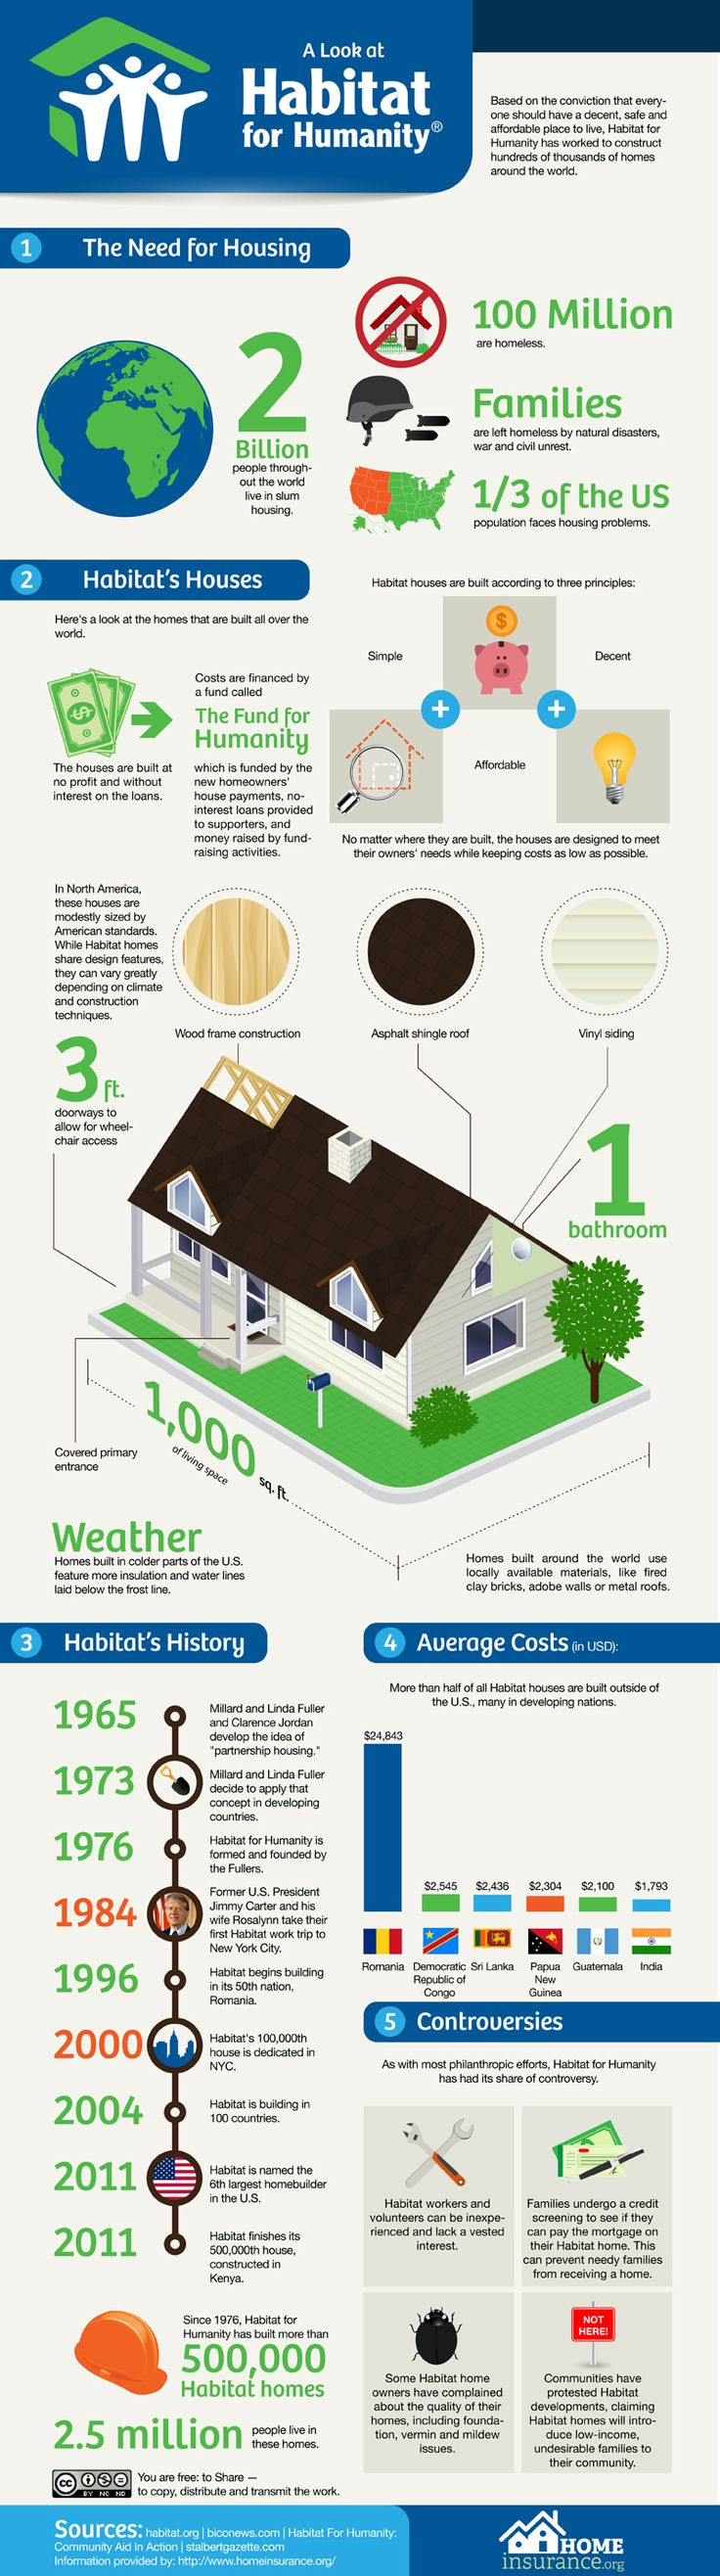 A look at Habitat for Humanity [infographic] - Holy Kaw!